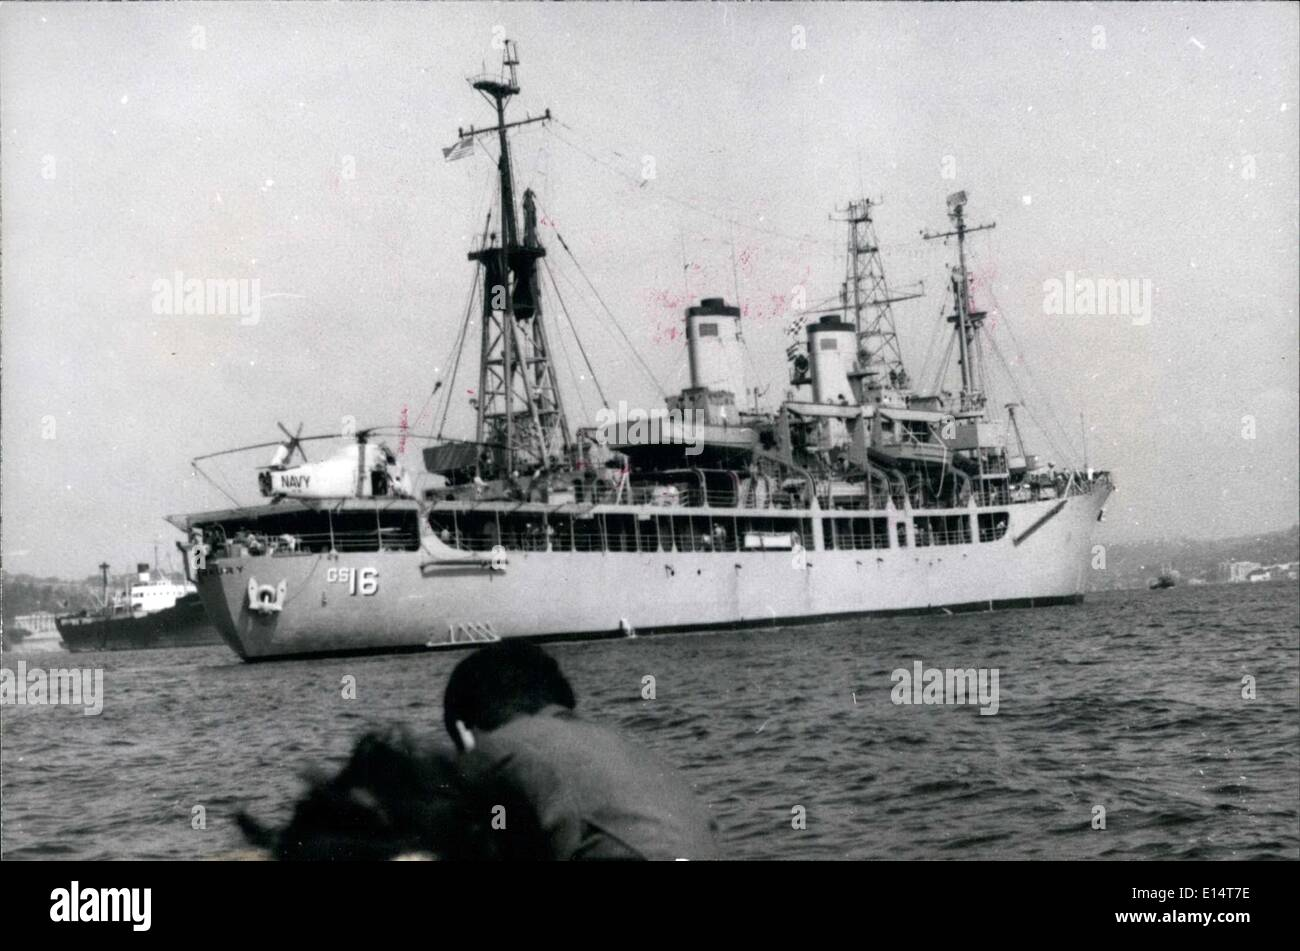 Apr. 18, 2012 - The first American Navy ship ''Maury'' which sail to the black sea after the world - Stock Image